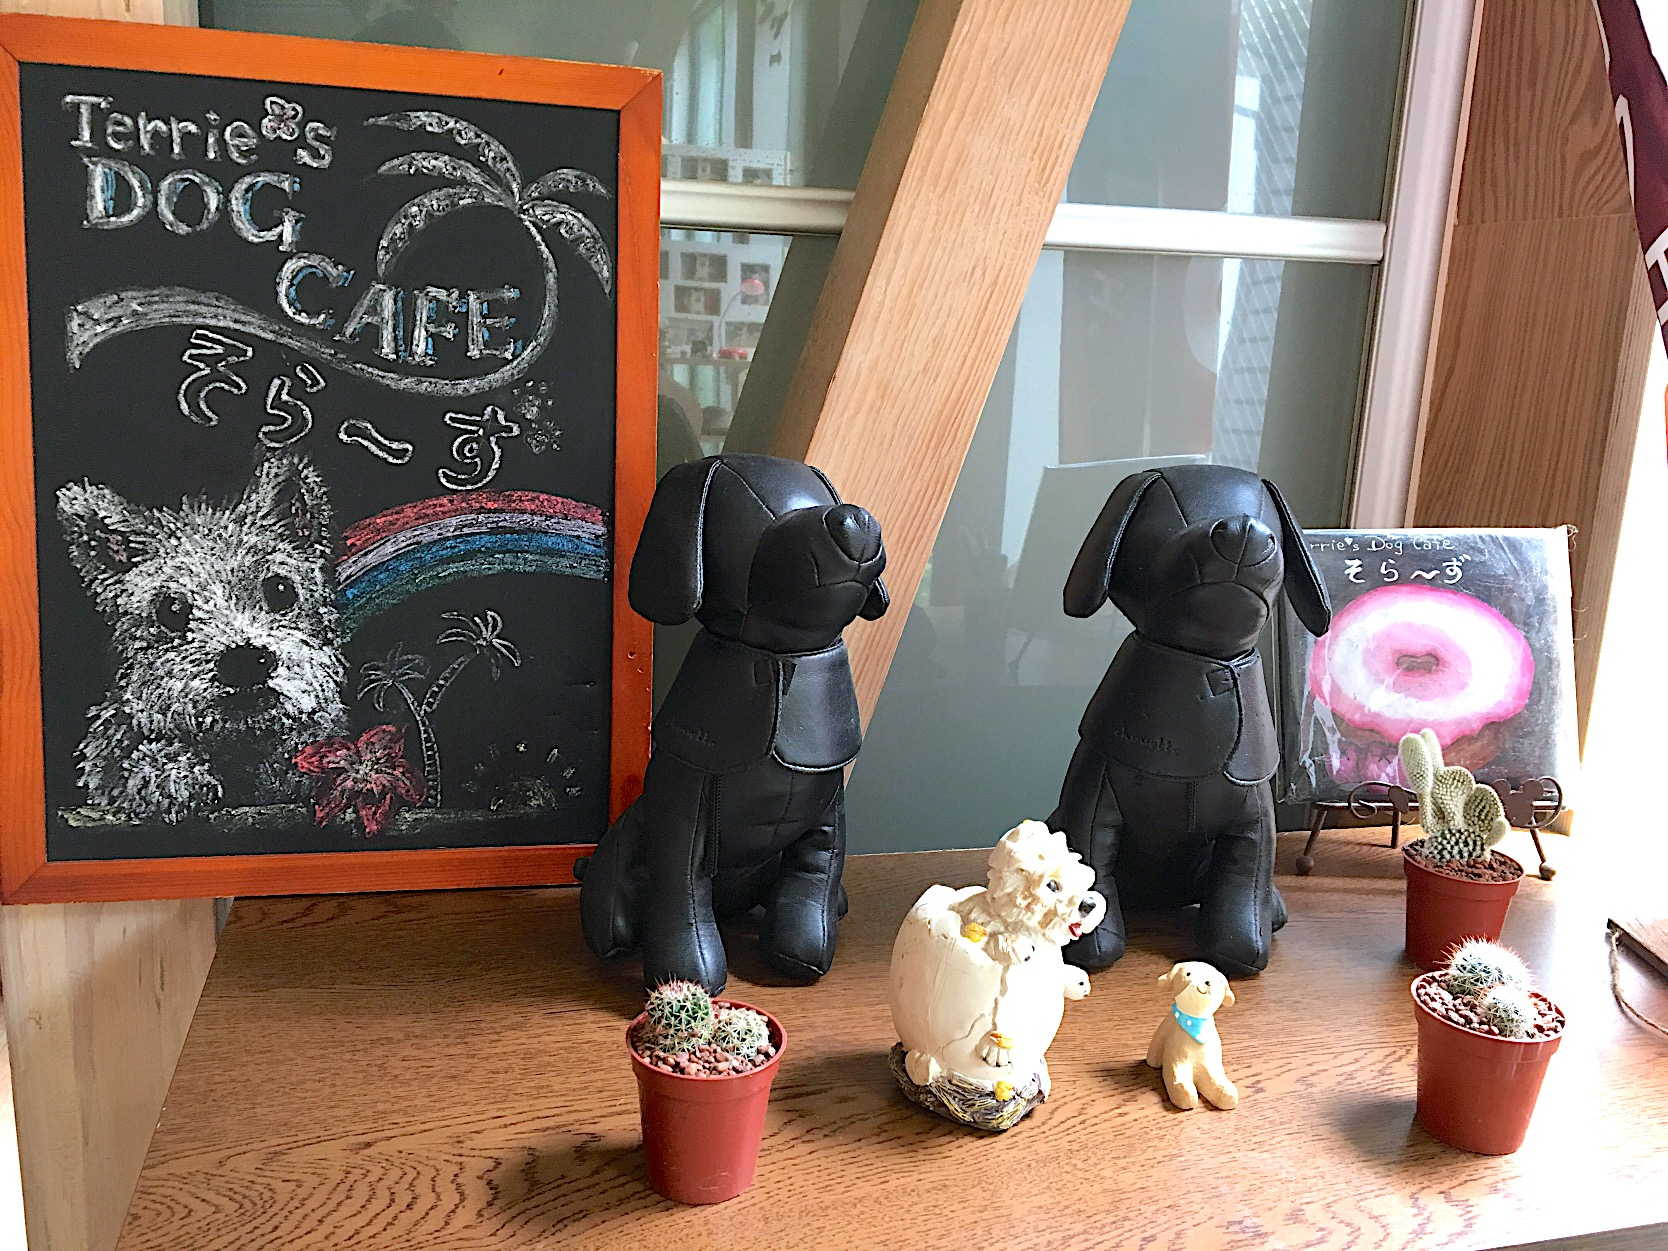 Terries' Dog Cafe そら〜ず(テリーズ ドッグカフェ)